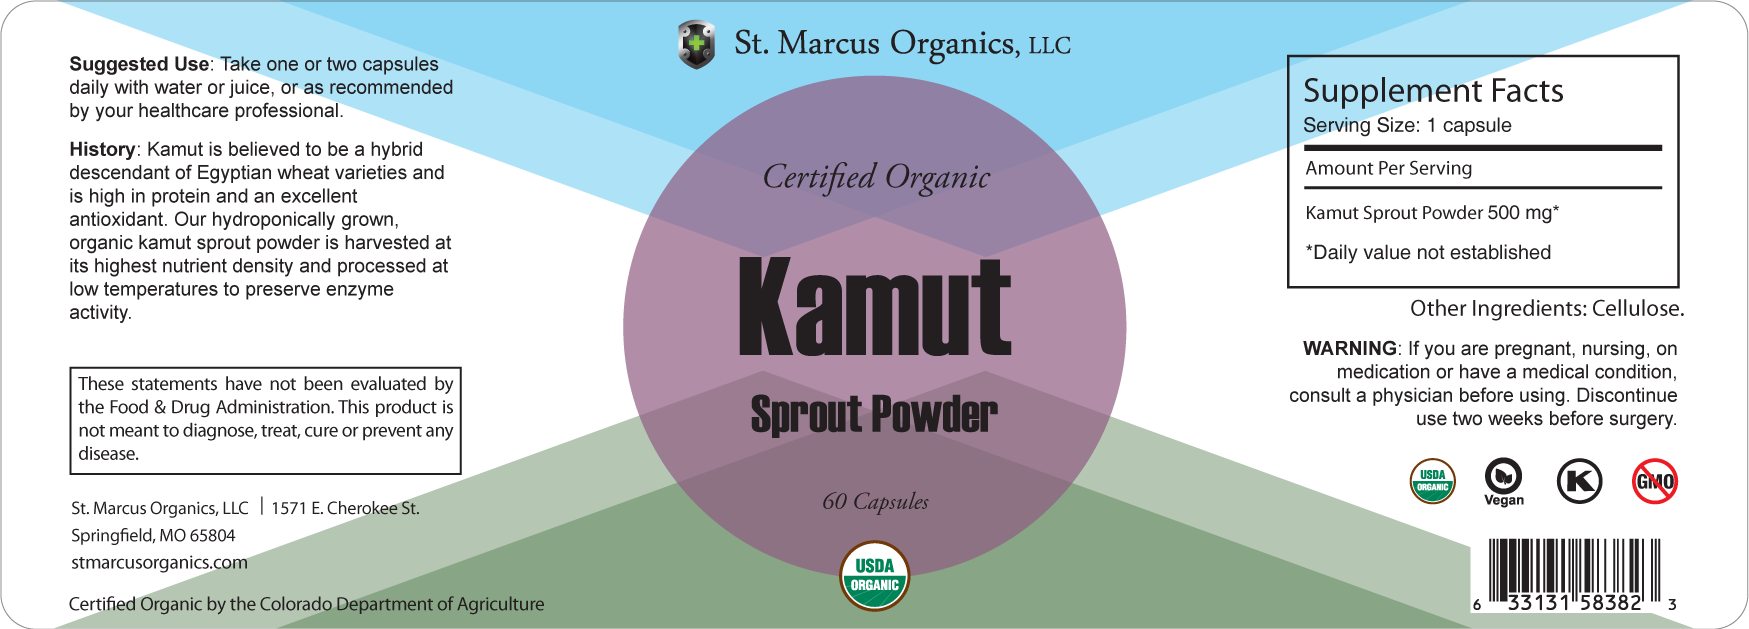 Kamut-Sprout-Powder-Capsules-St-Marcus-Organics